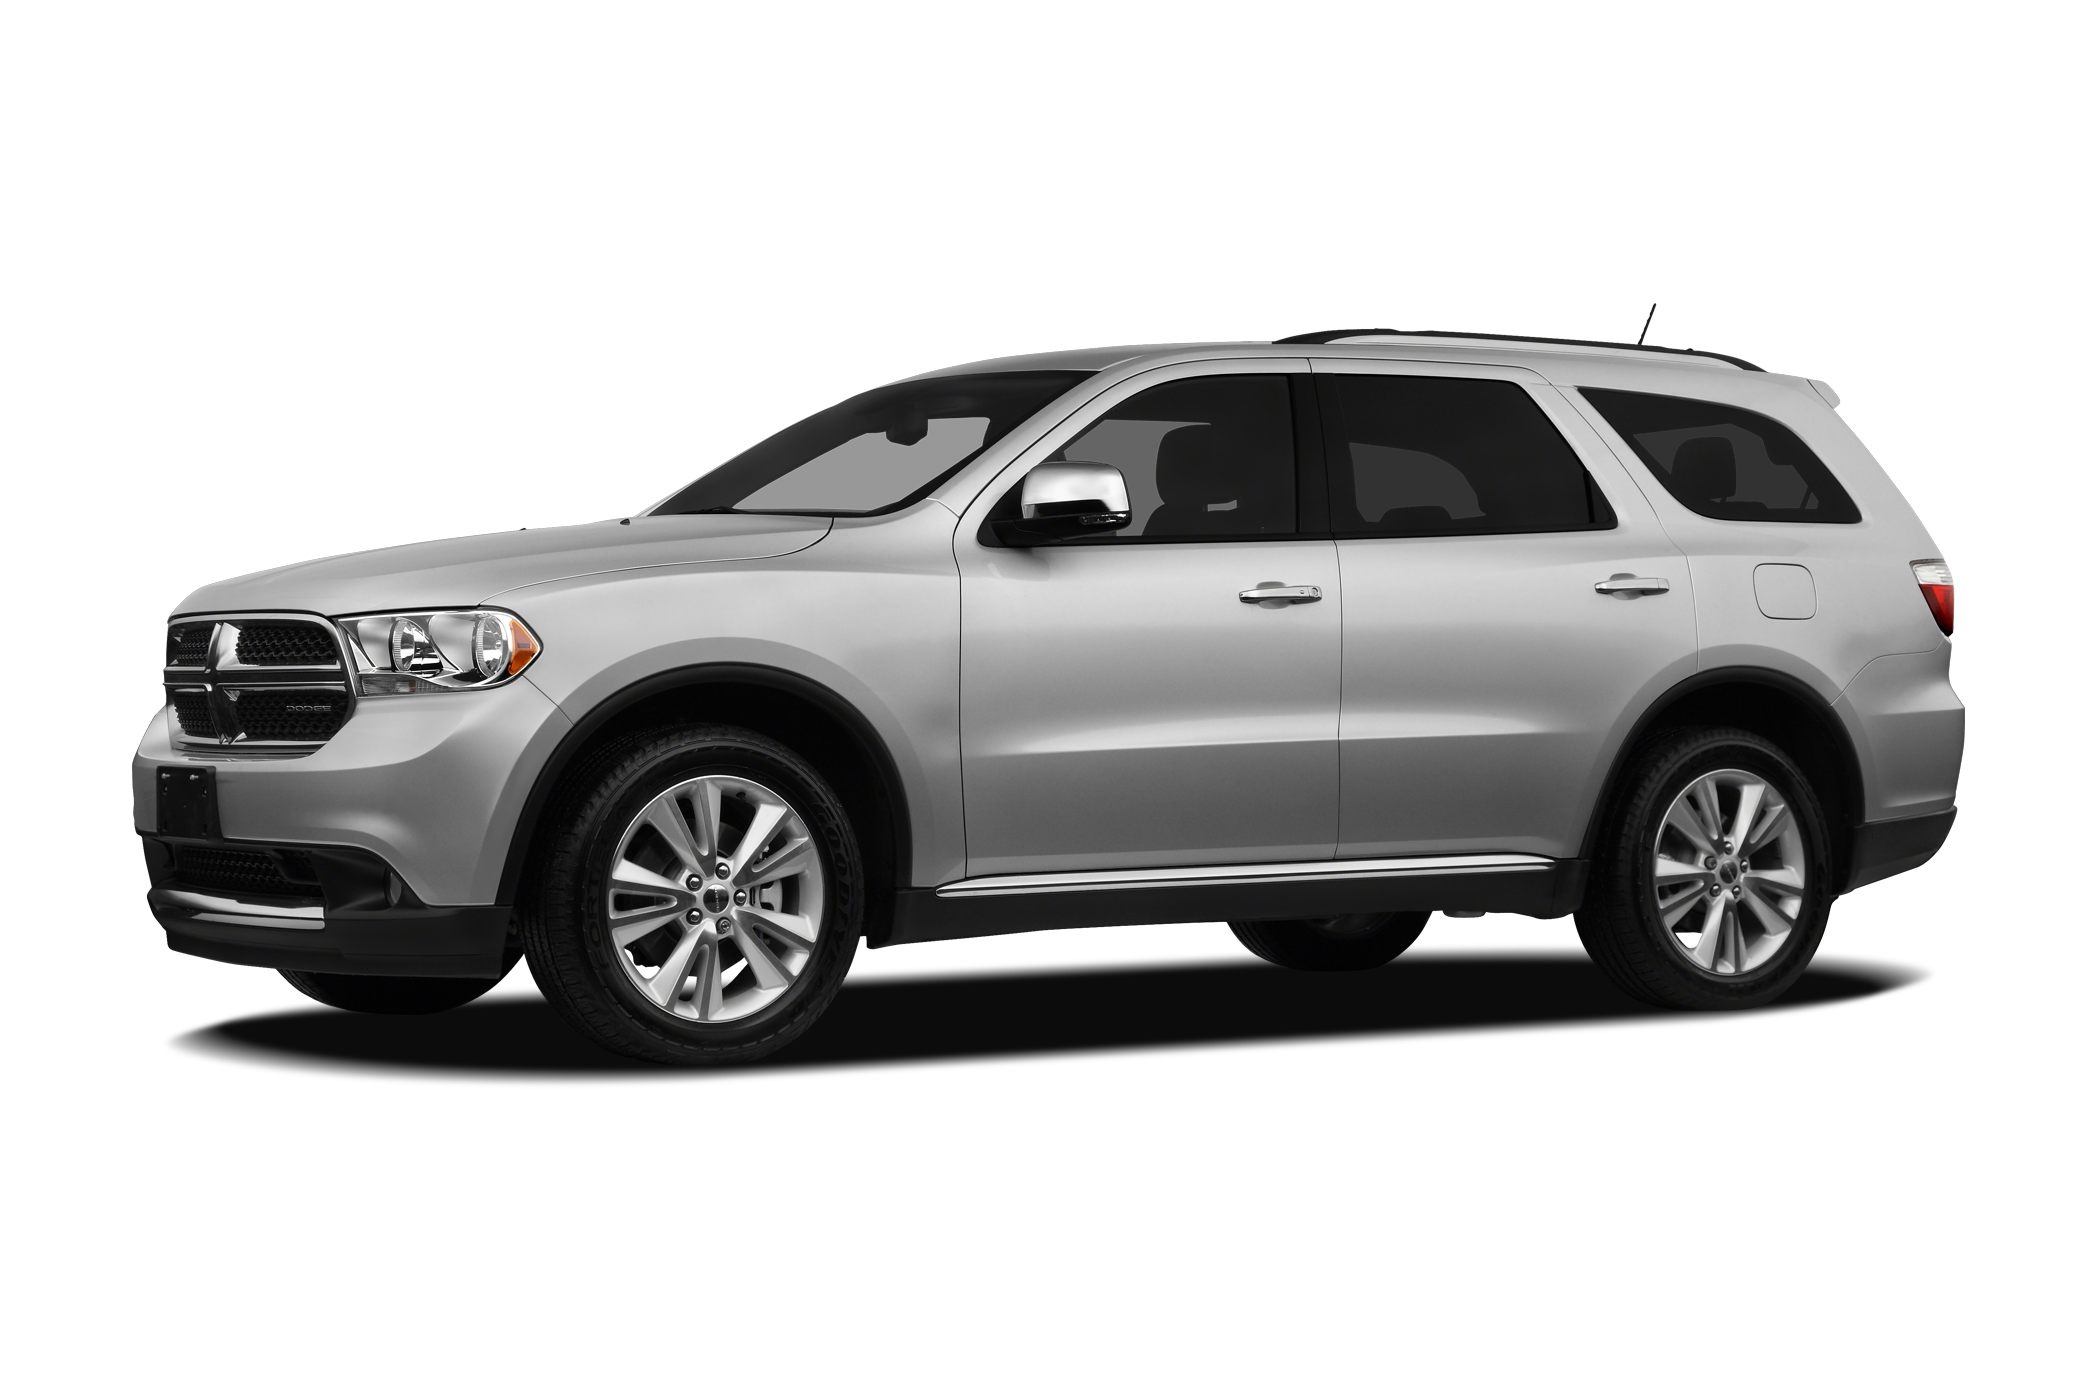 2011 Dodge Durango Express SUV for sale in Waseca for $19,999 with 69,485 miles